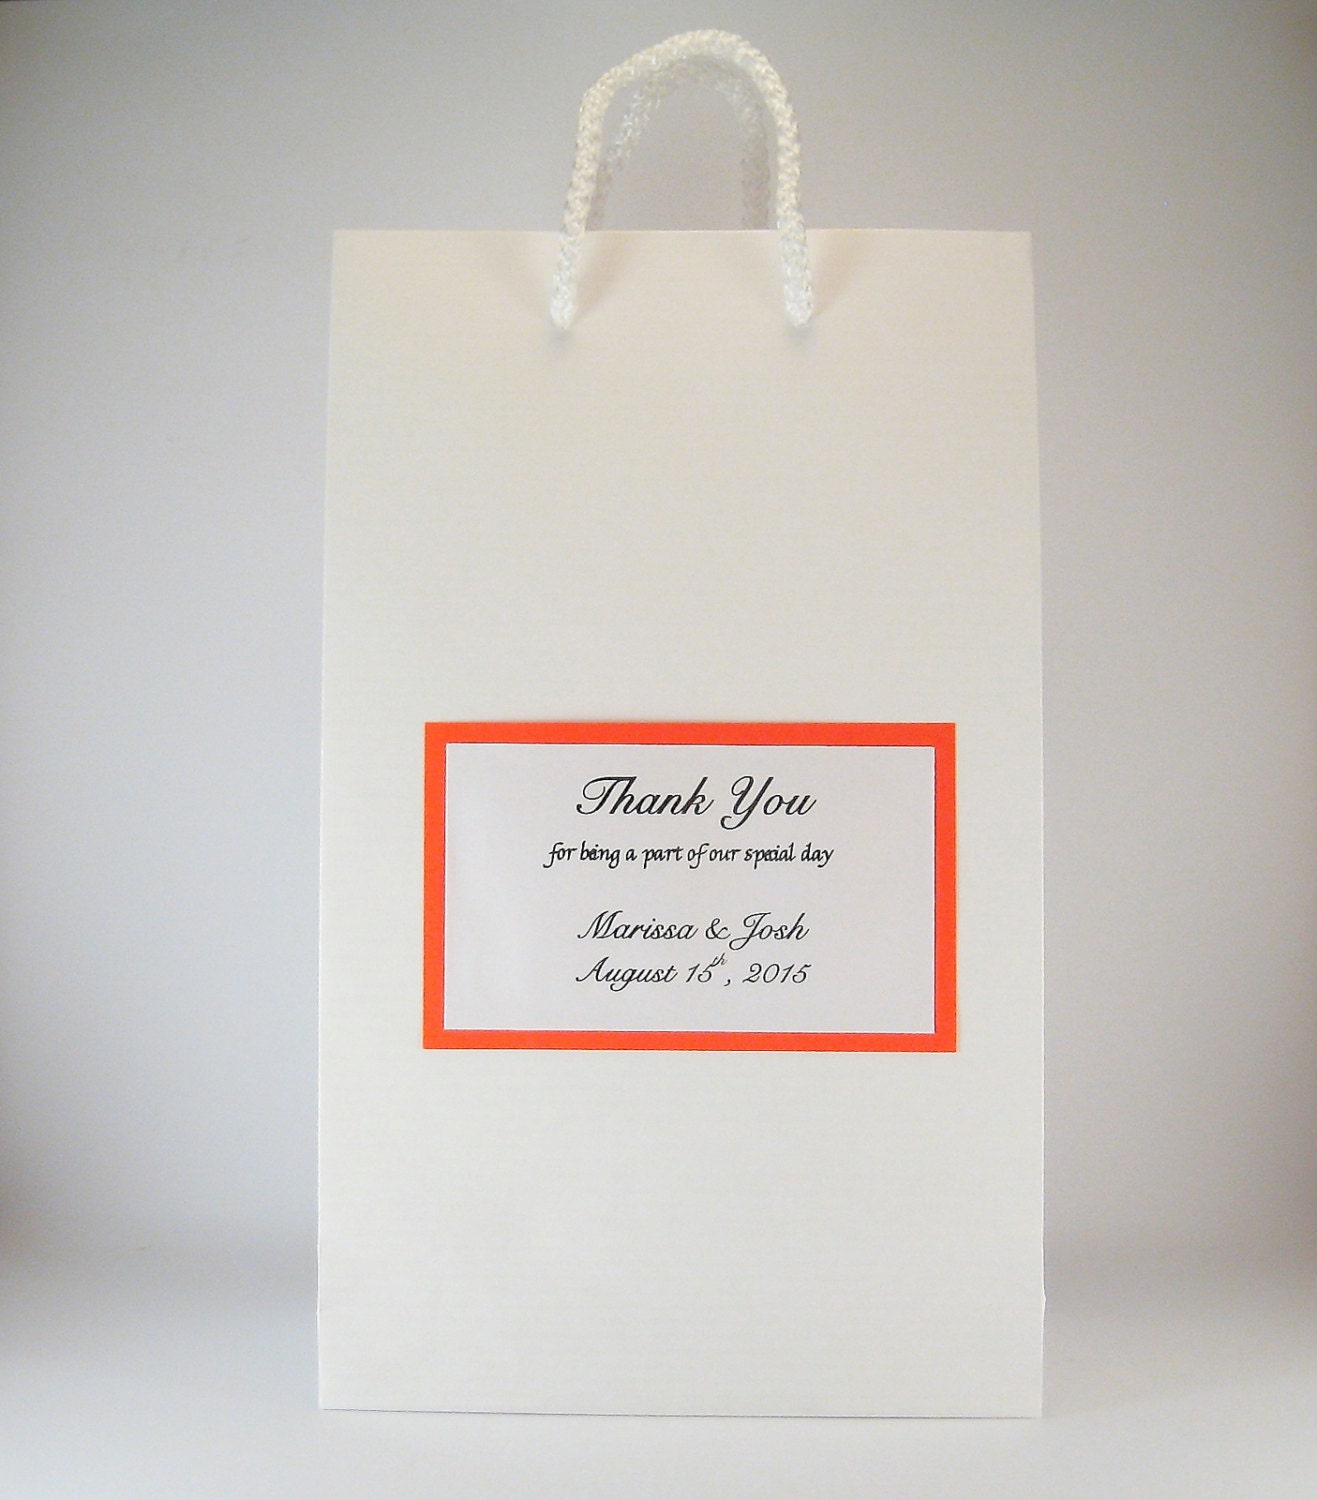 Wedding favor bags 50 personalized party gift bags white for Wedding favor gift bags